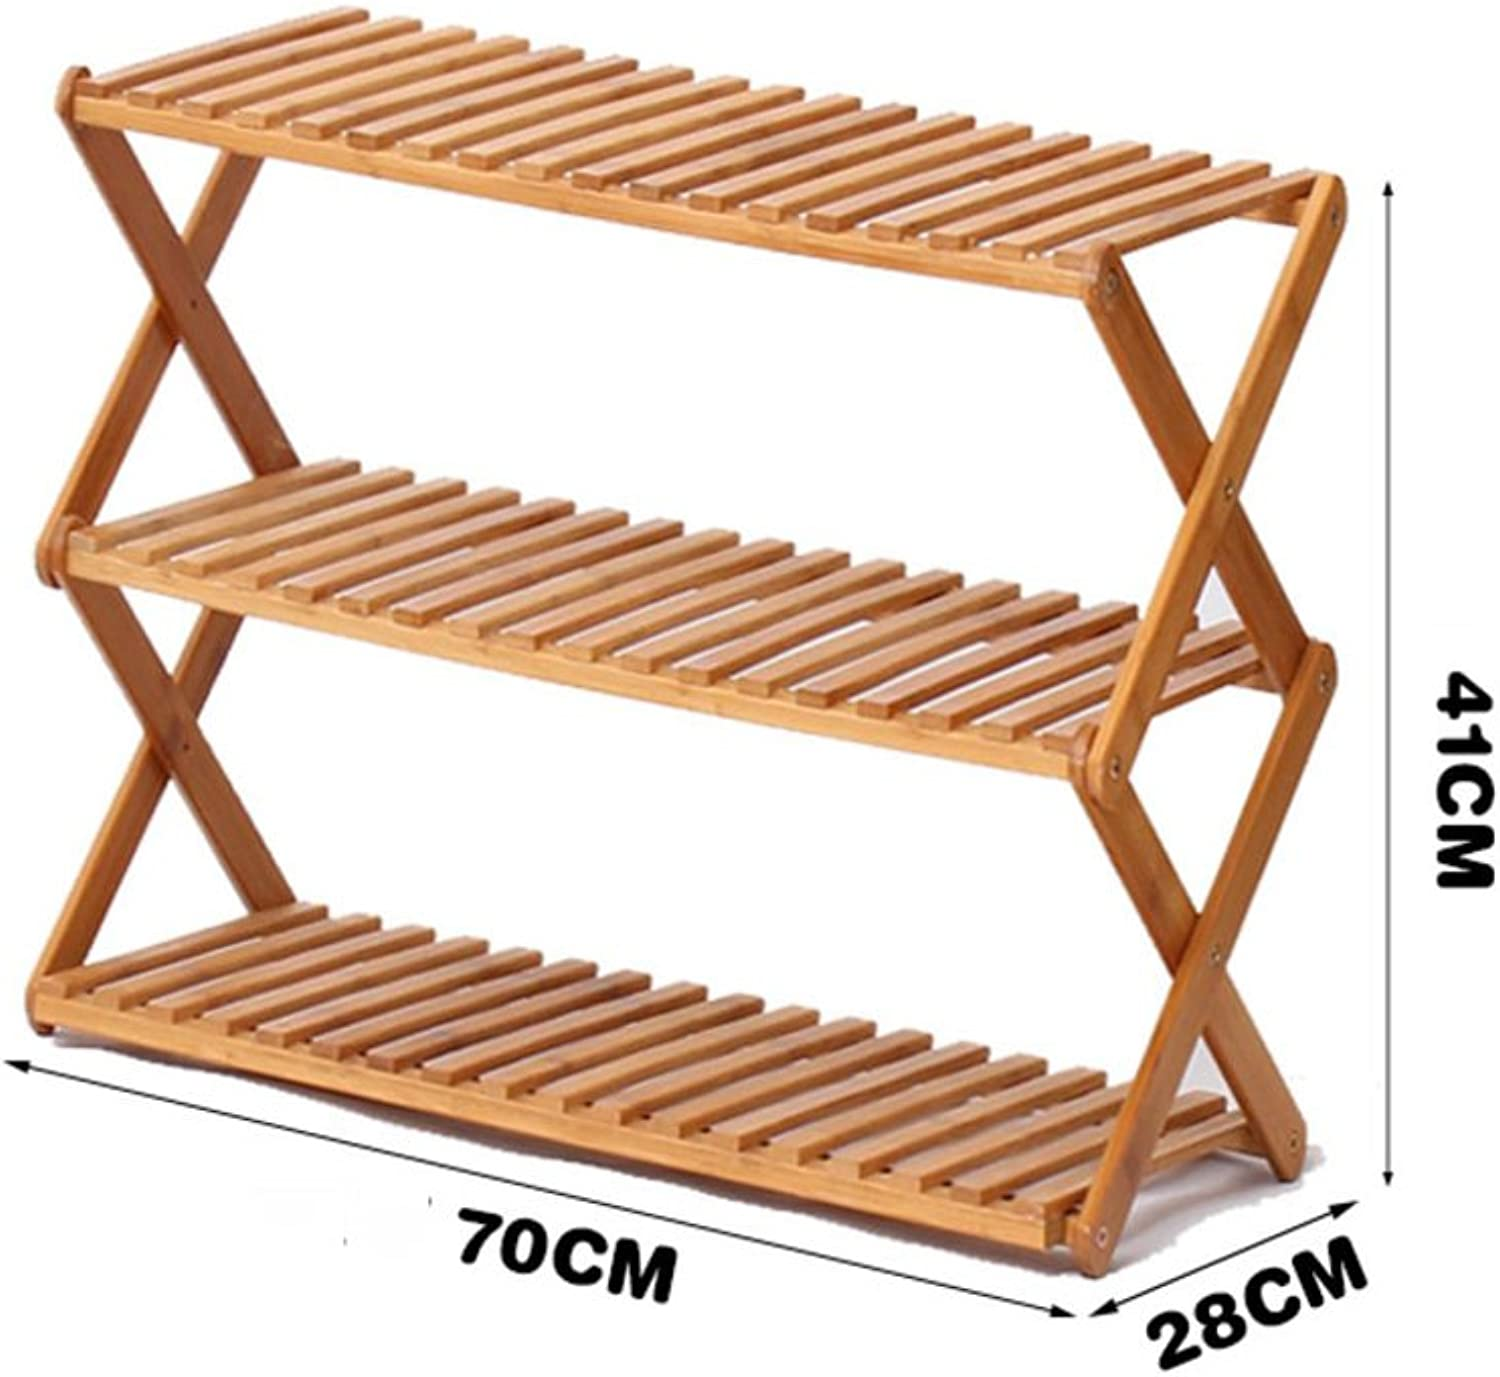 shoes Rack Free Inssizetion Folding shoes Rack Simple Solid Wood Multi-Layer shoes Cabinet Multifunction dust-Proof Economic Type Dorm Room Household,D